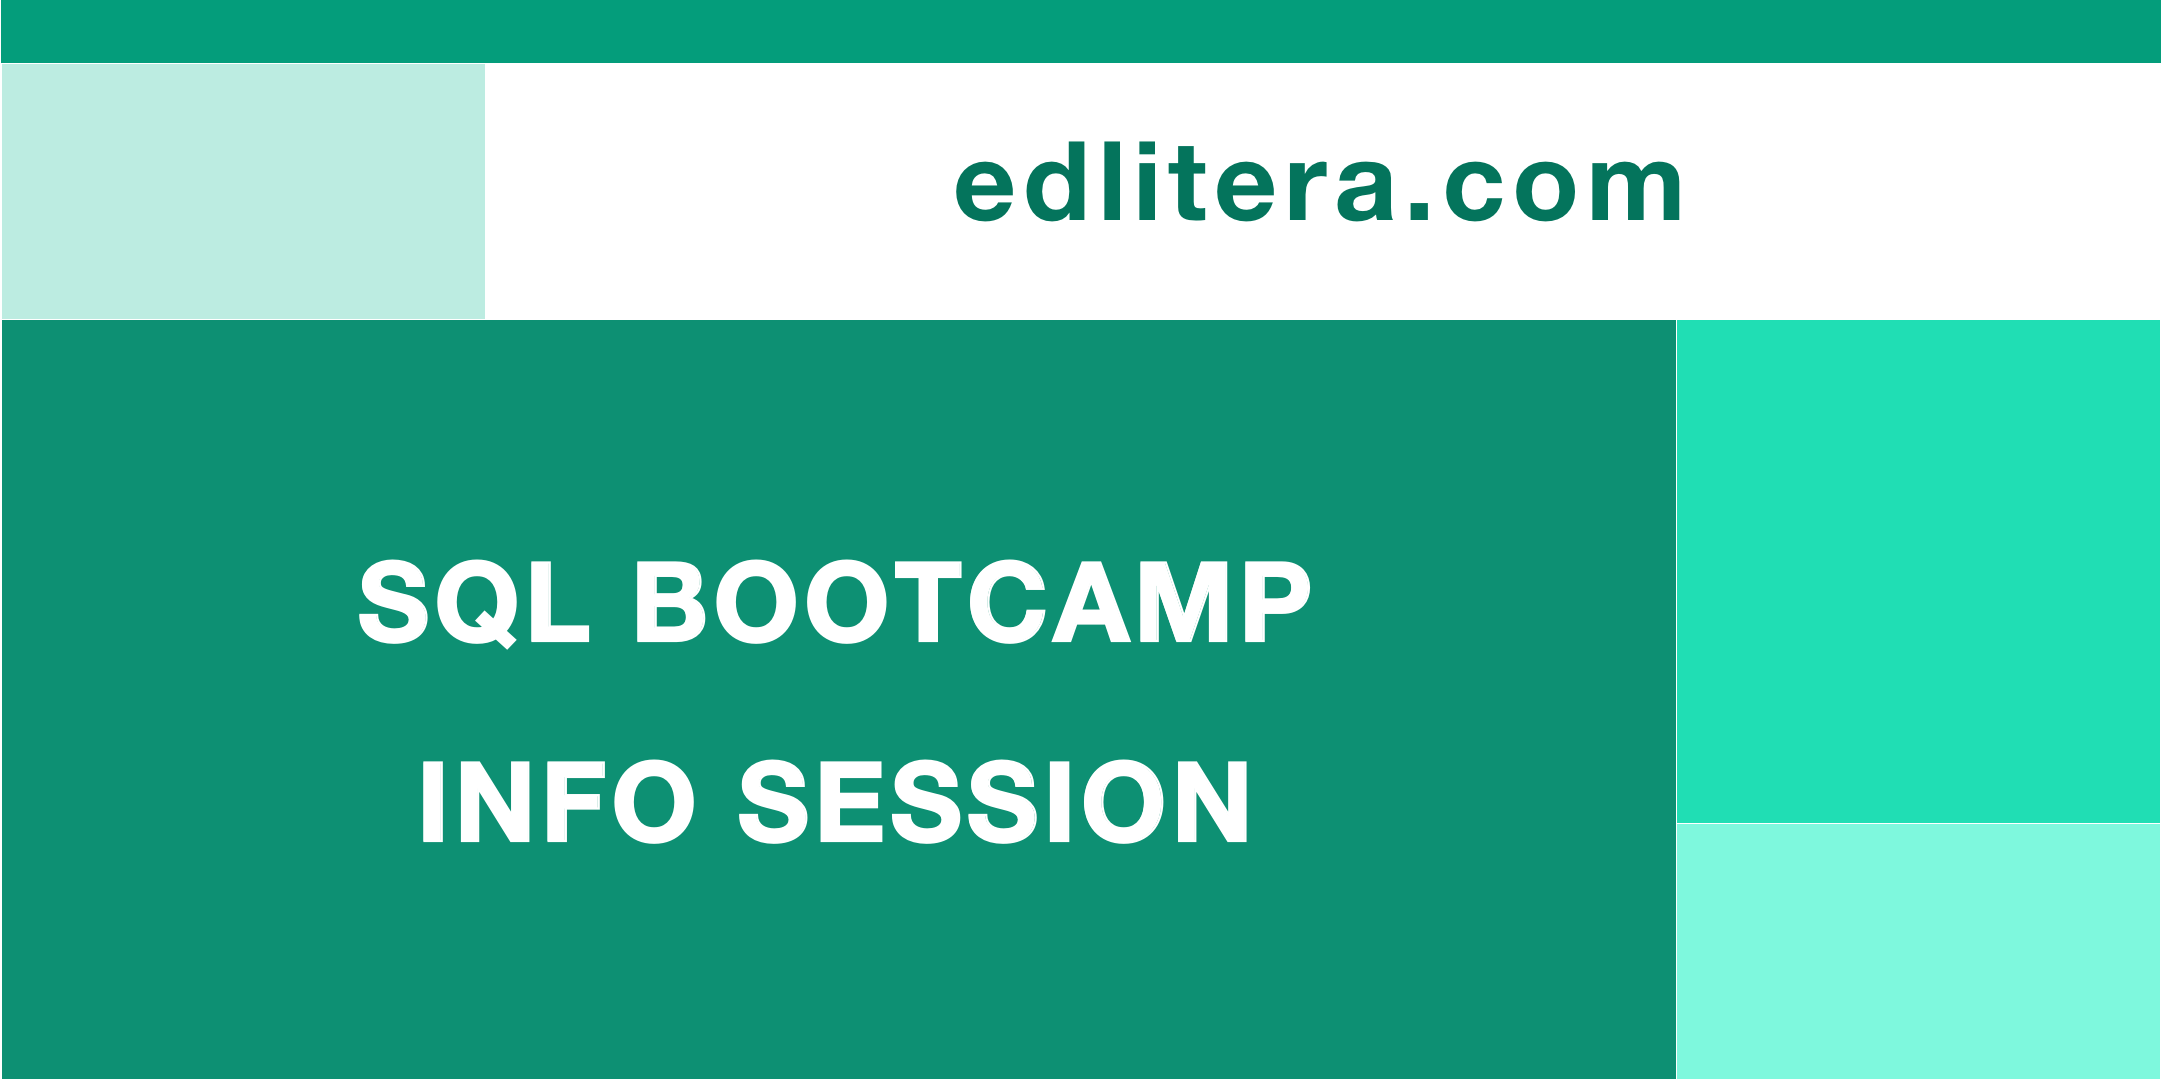 Birmingham SQL Bootcamp Info Session